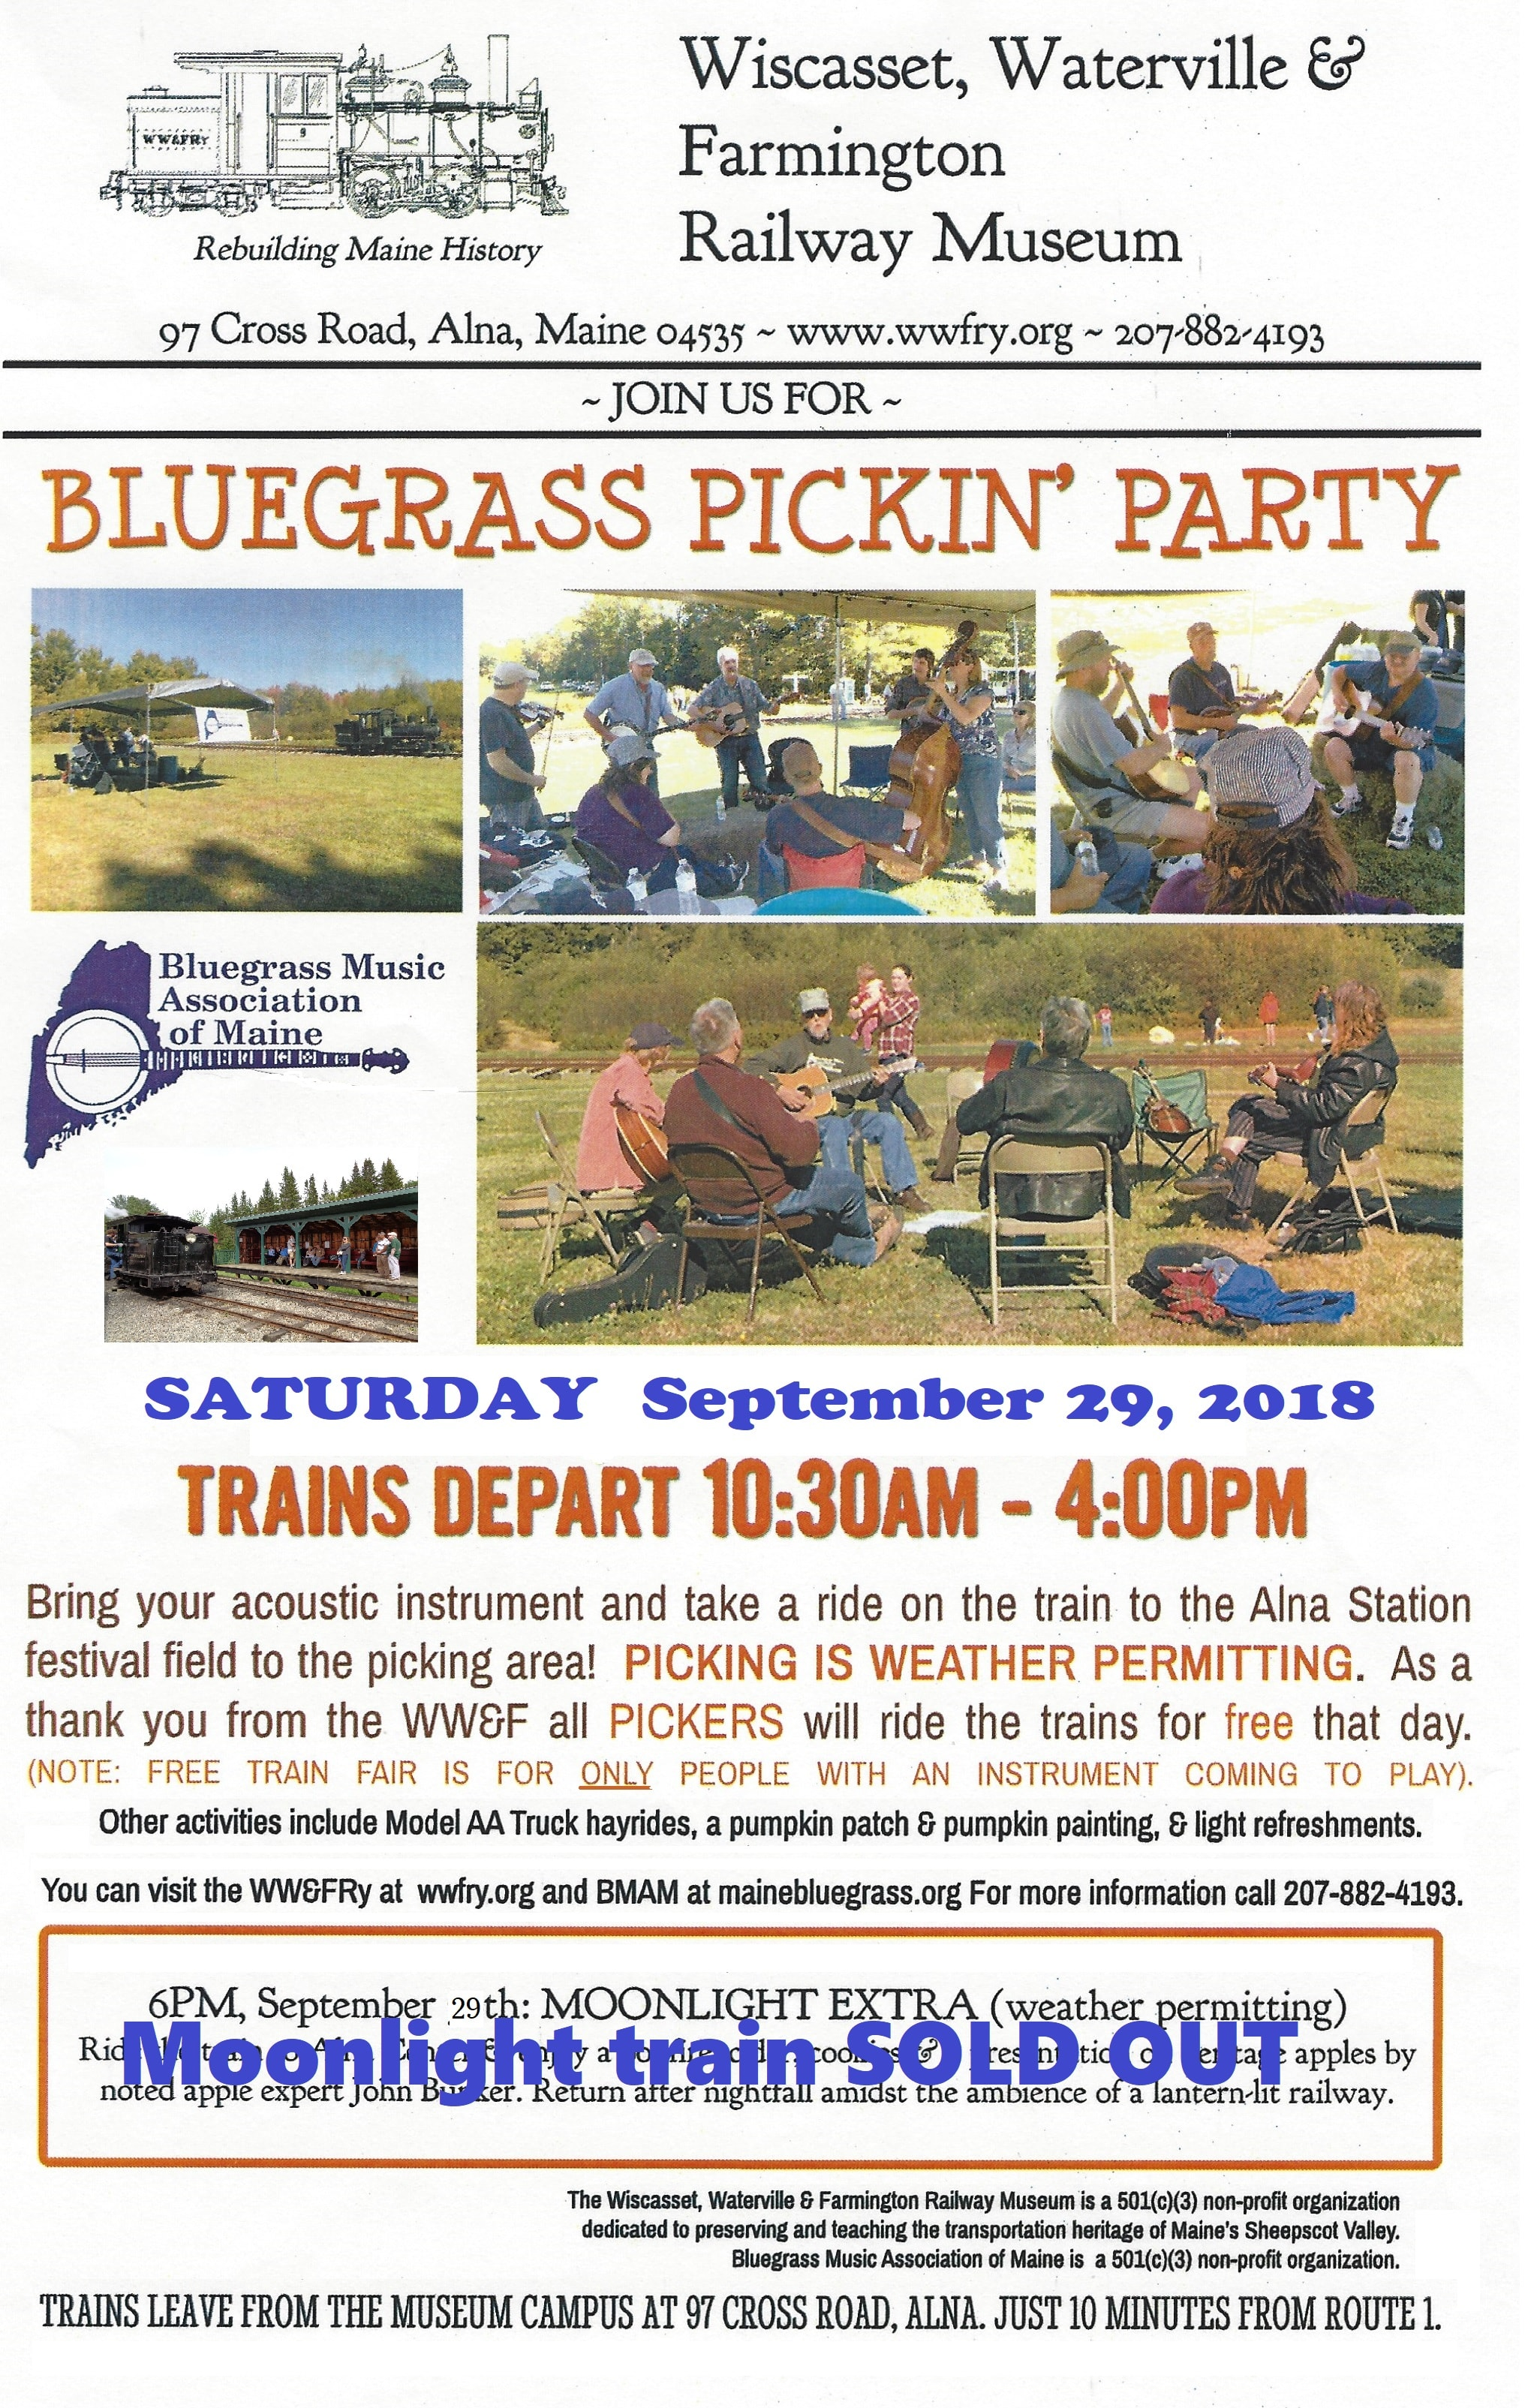 Pickin' Party at the WW&FRy Fall Festival   Bluegrass Music